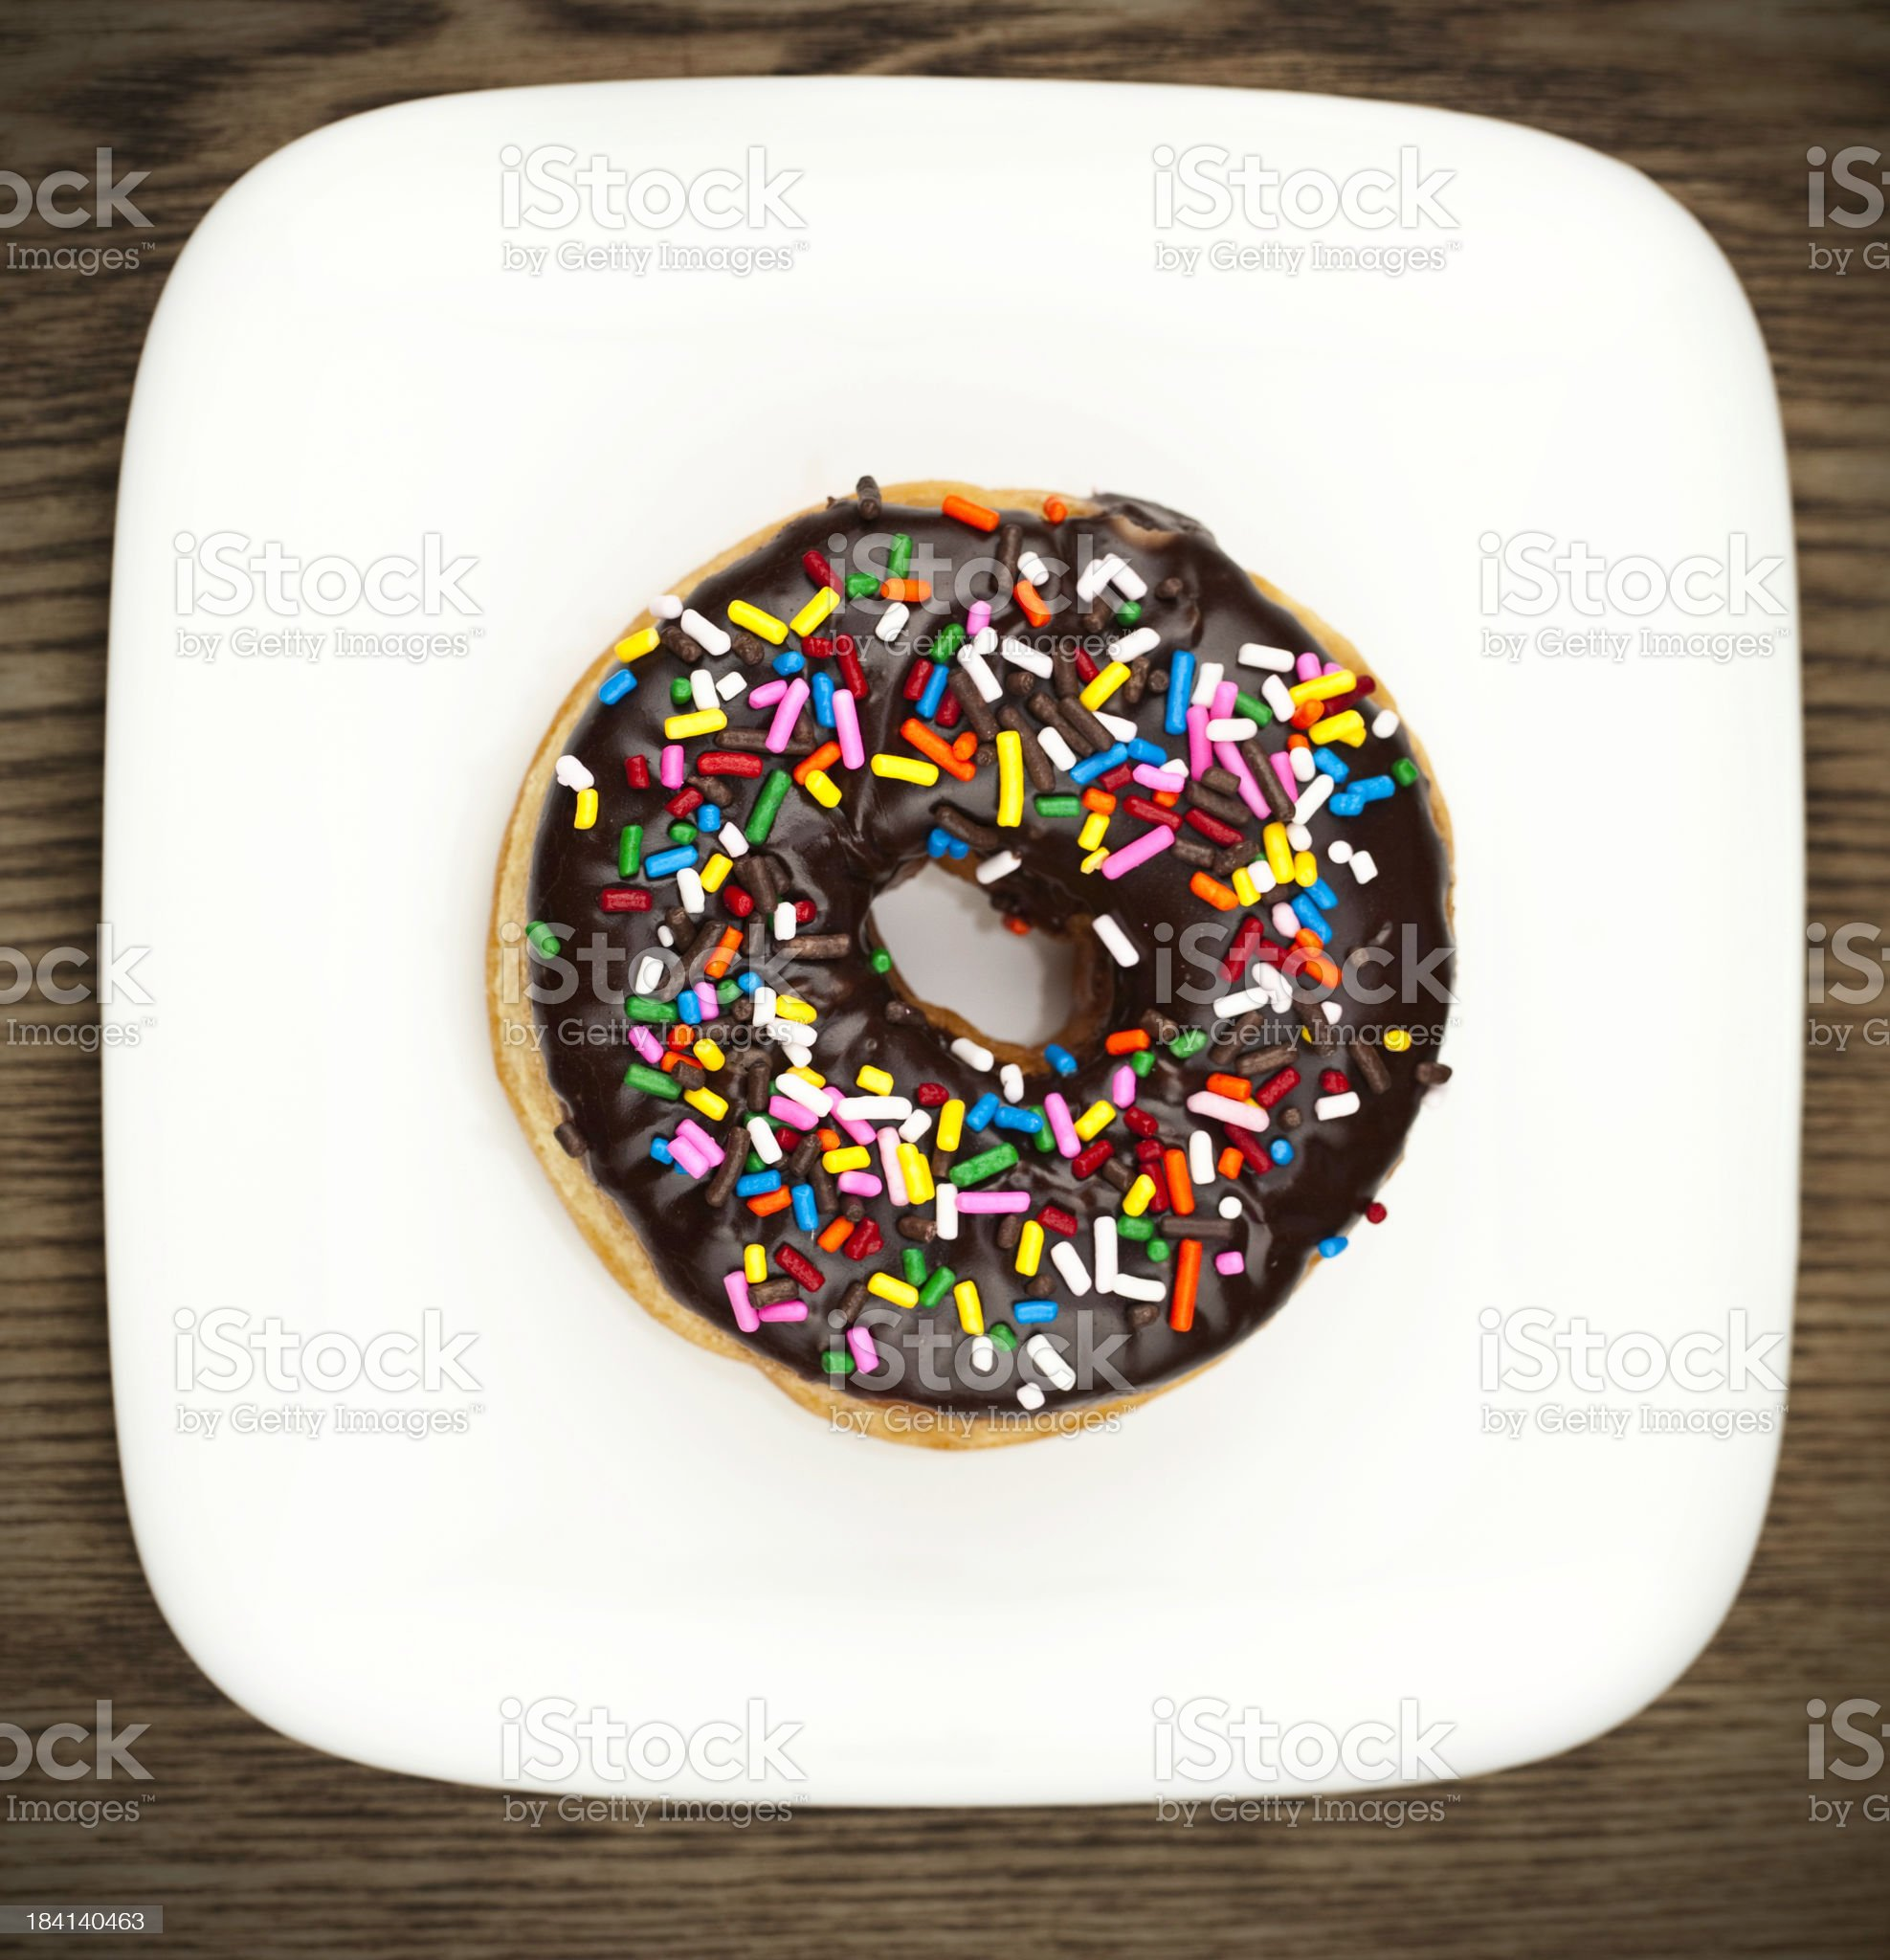 Temptation on a Plate royalty-free stock photo